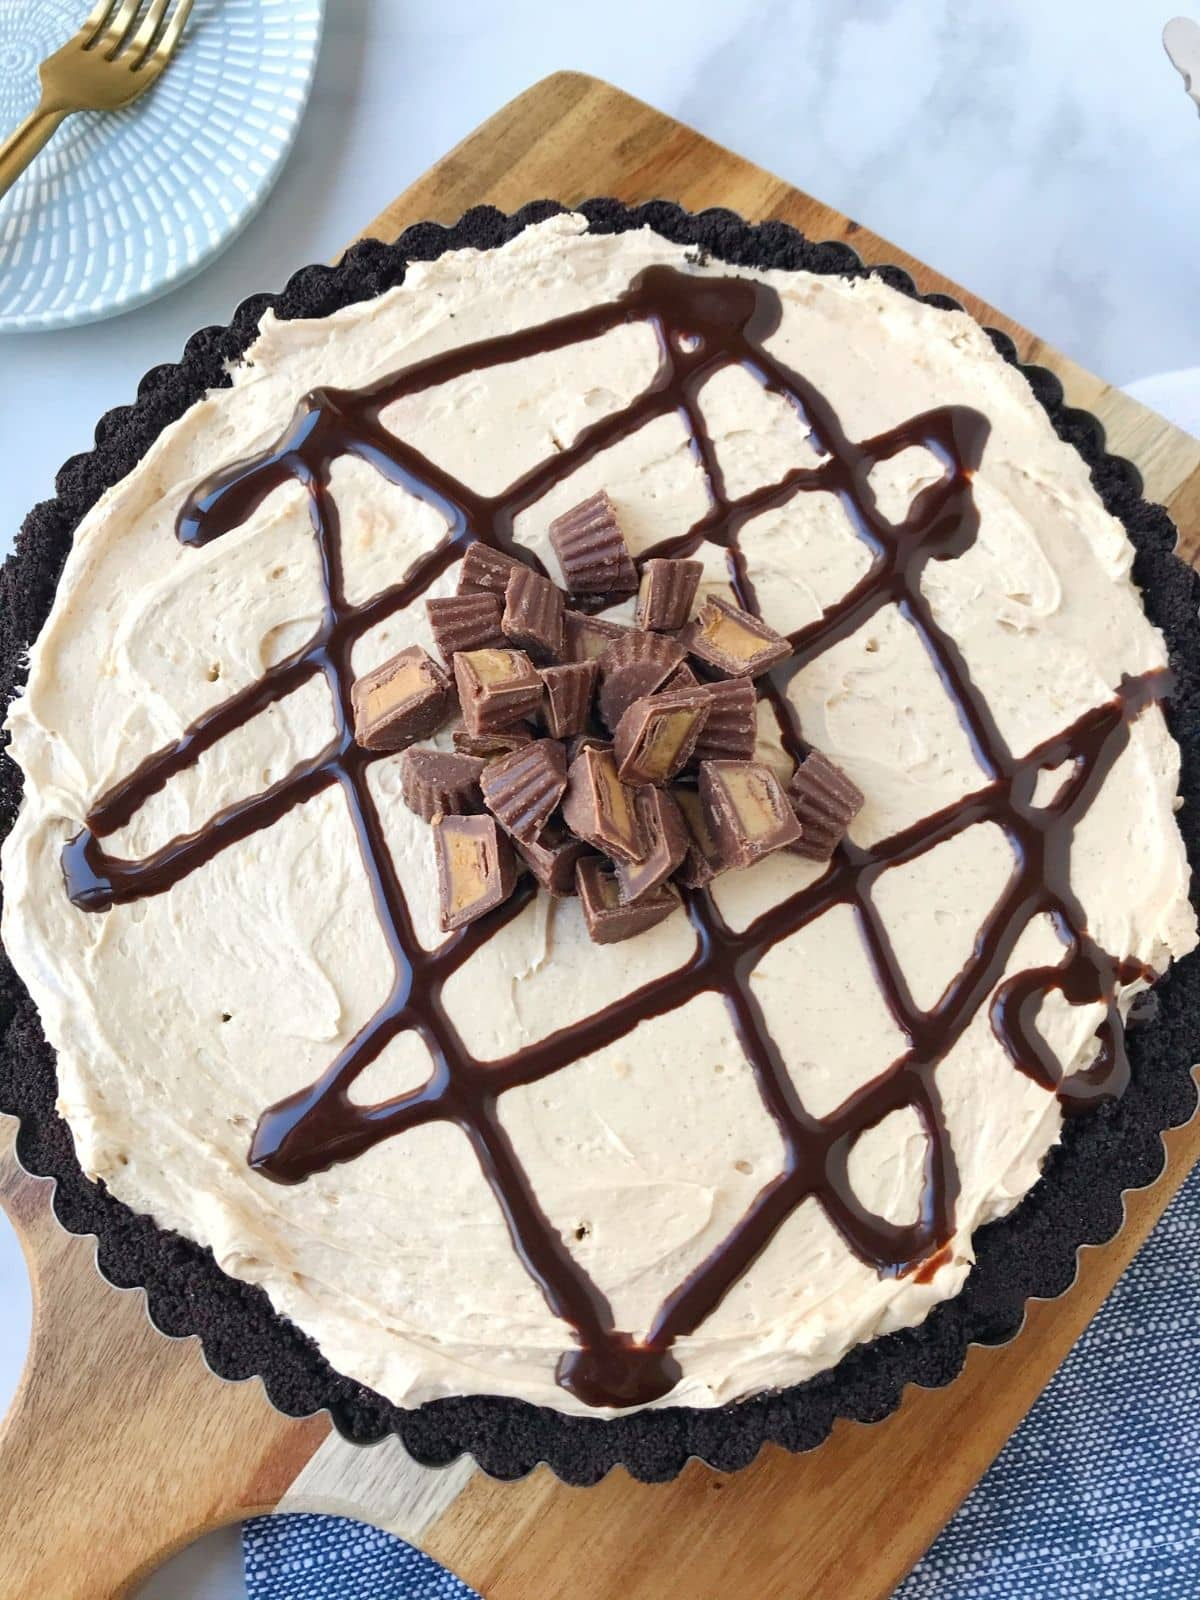 whole peanut butter tart garnished with chocolate sauce and peanut butter cups